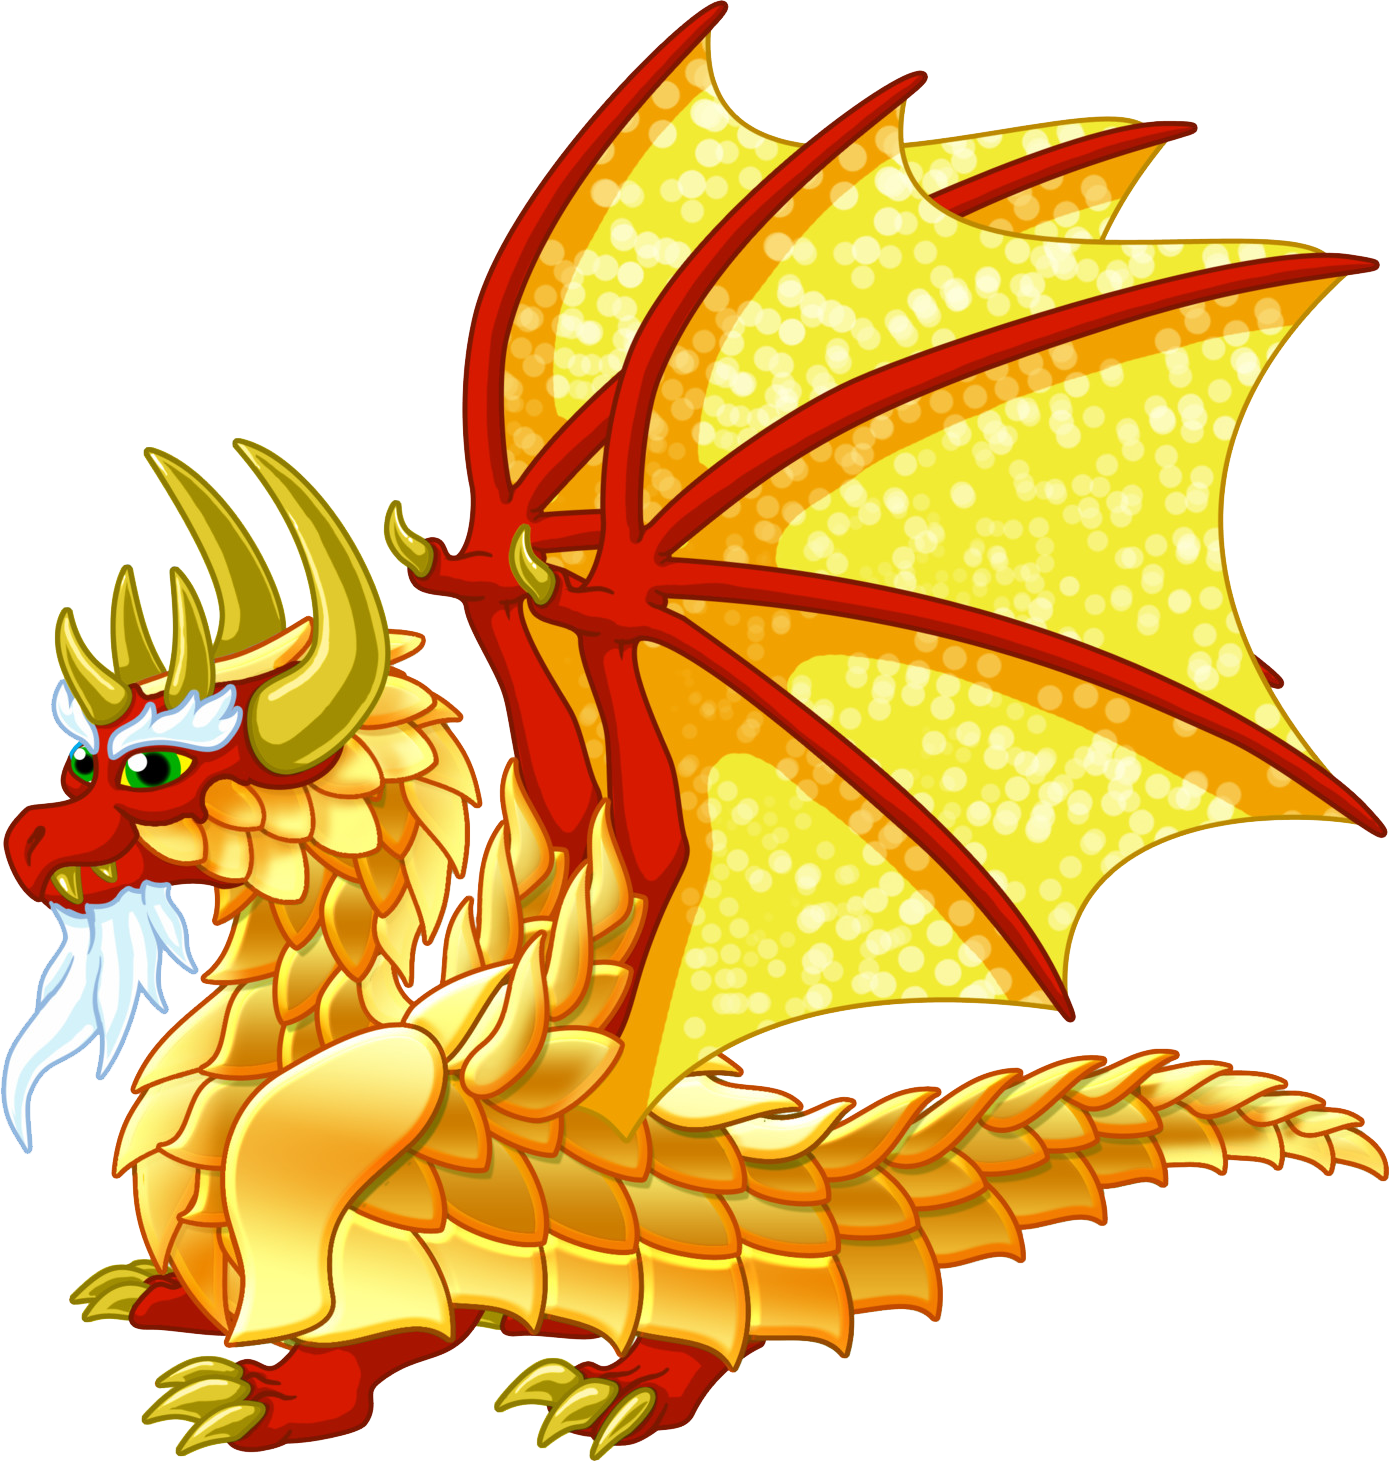 List of dragons in dragonvale for gold generation most powerful anabolic androgenic steroids